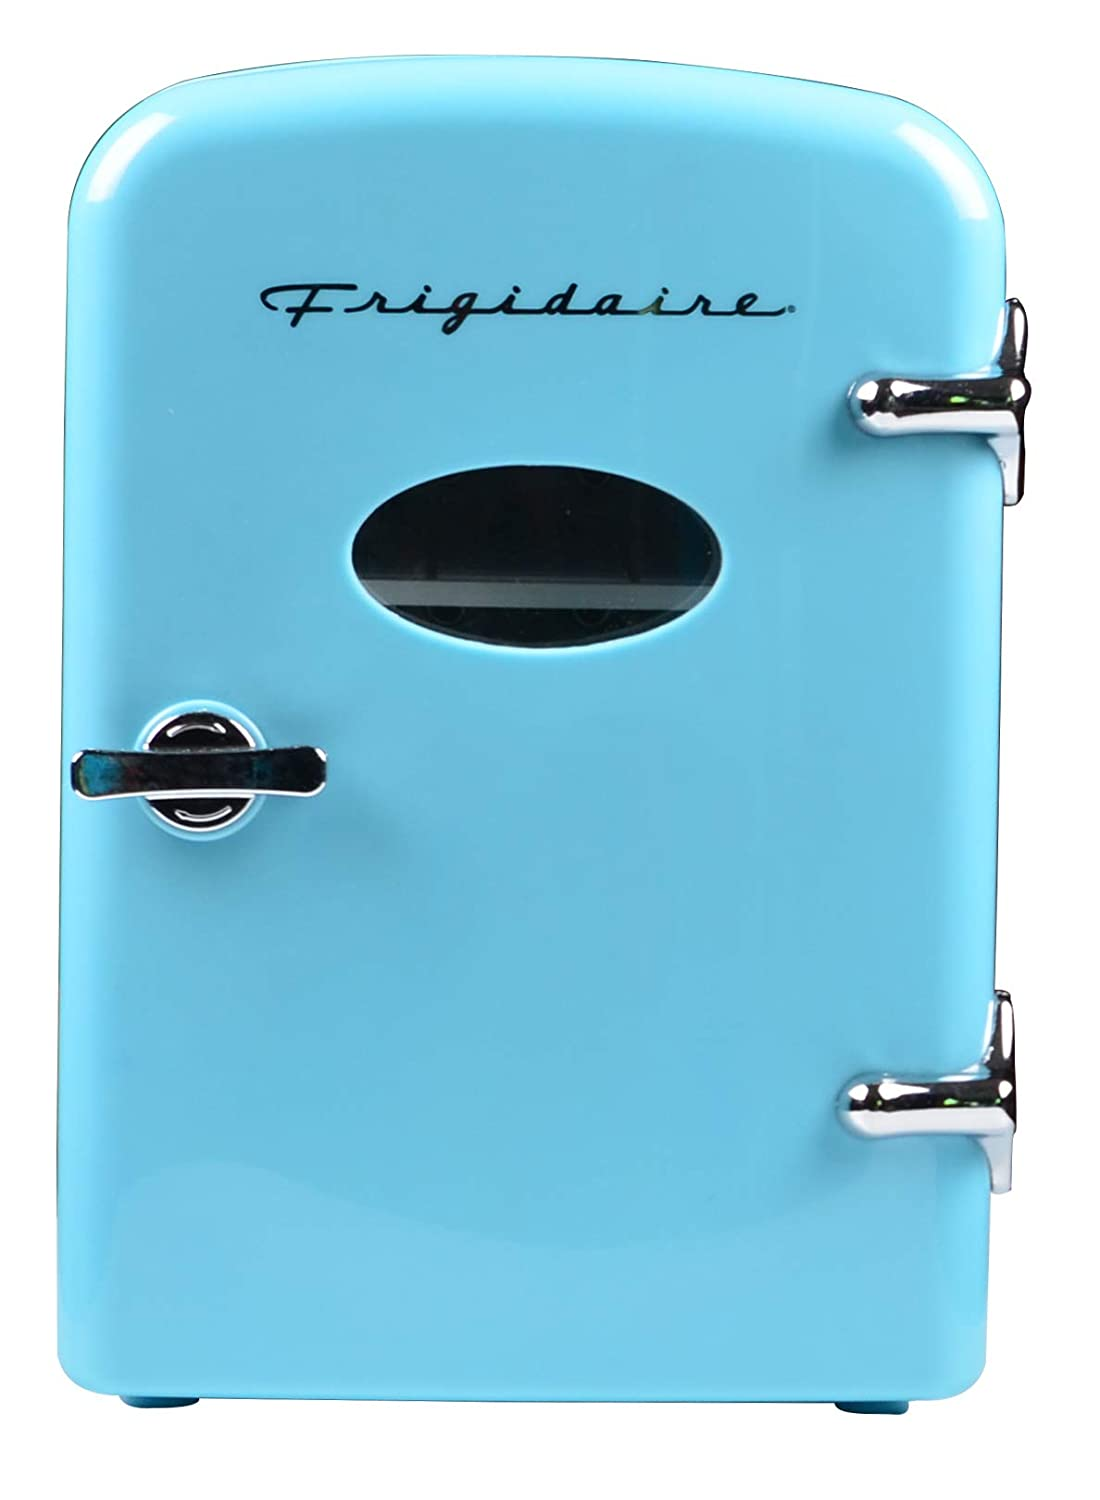 Frigidaire Retro Mini Compact Beverage Refrigerator, Great for keeping office lunch cool BLUE